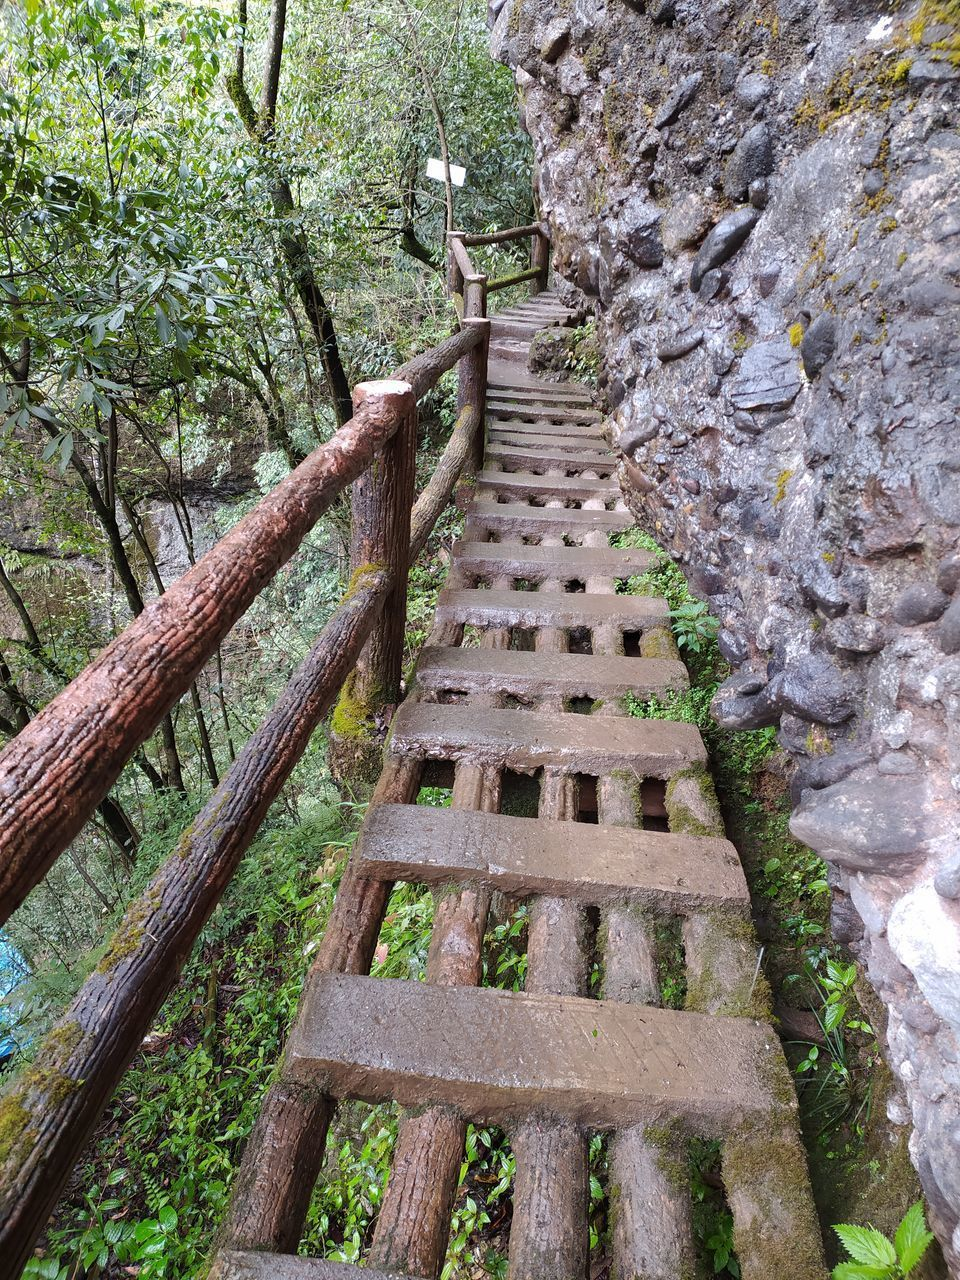 HIGH ANGLE VIEW OF WALKWAY IN FOREST